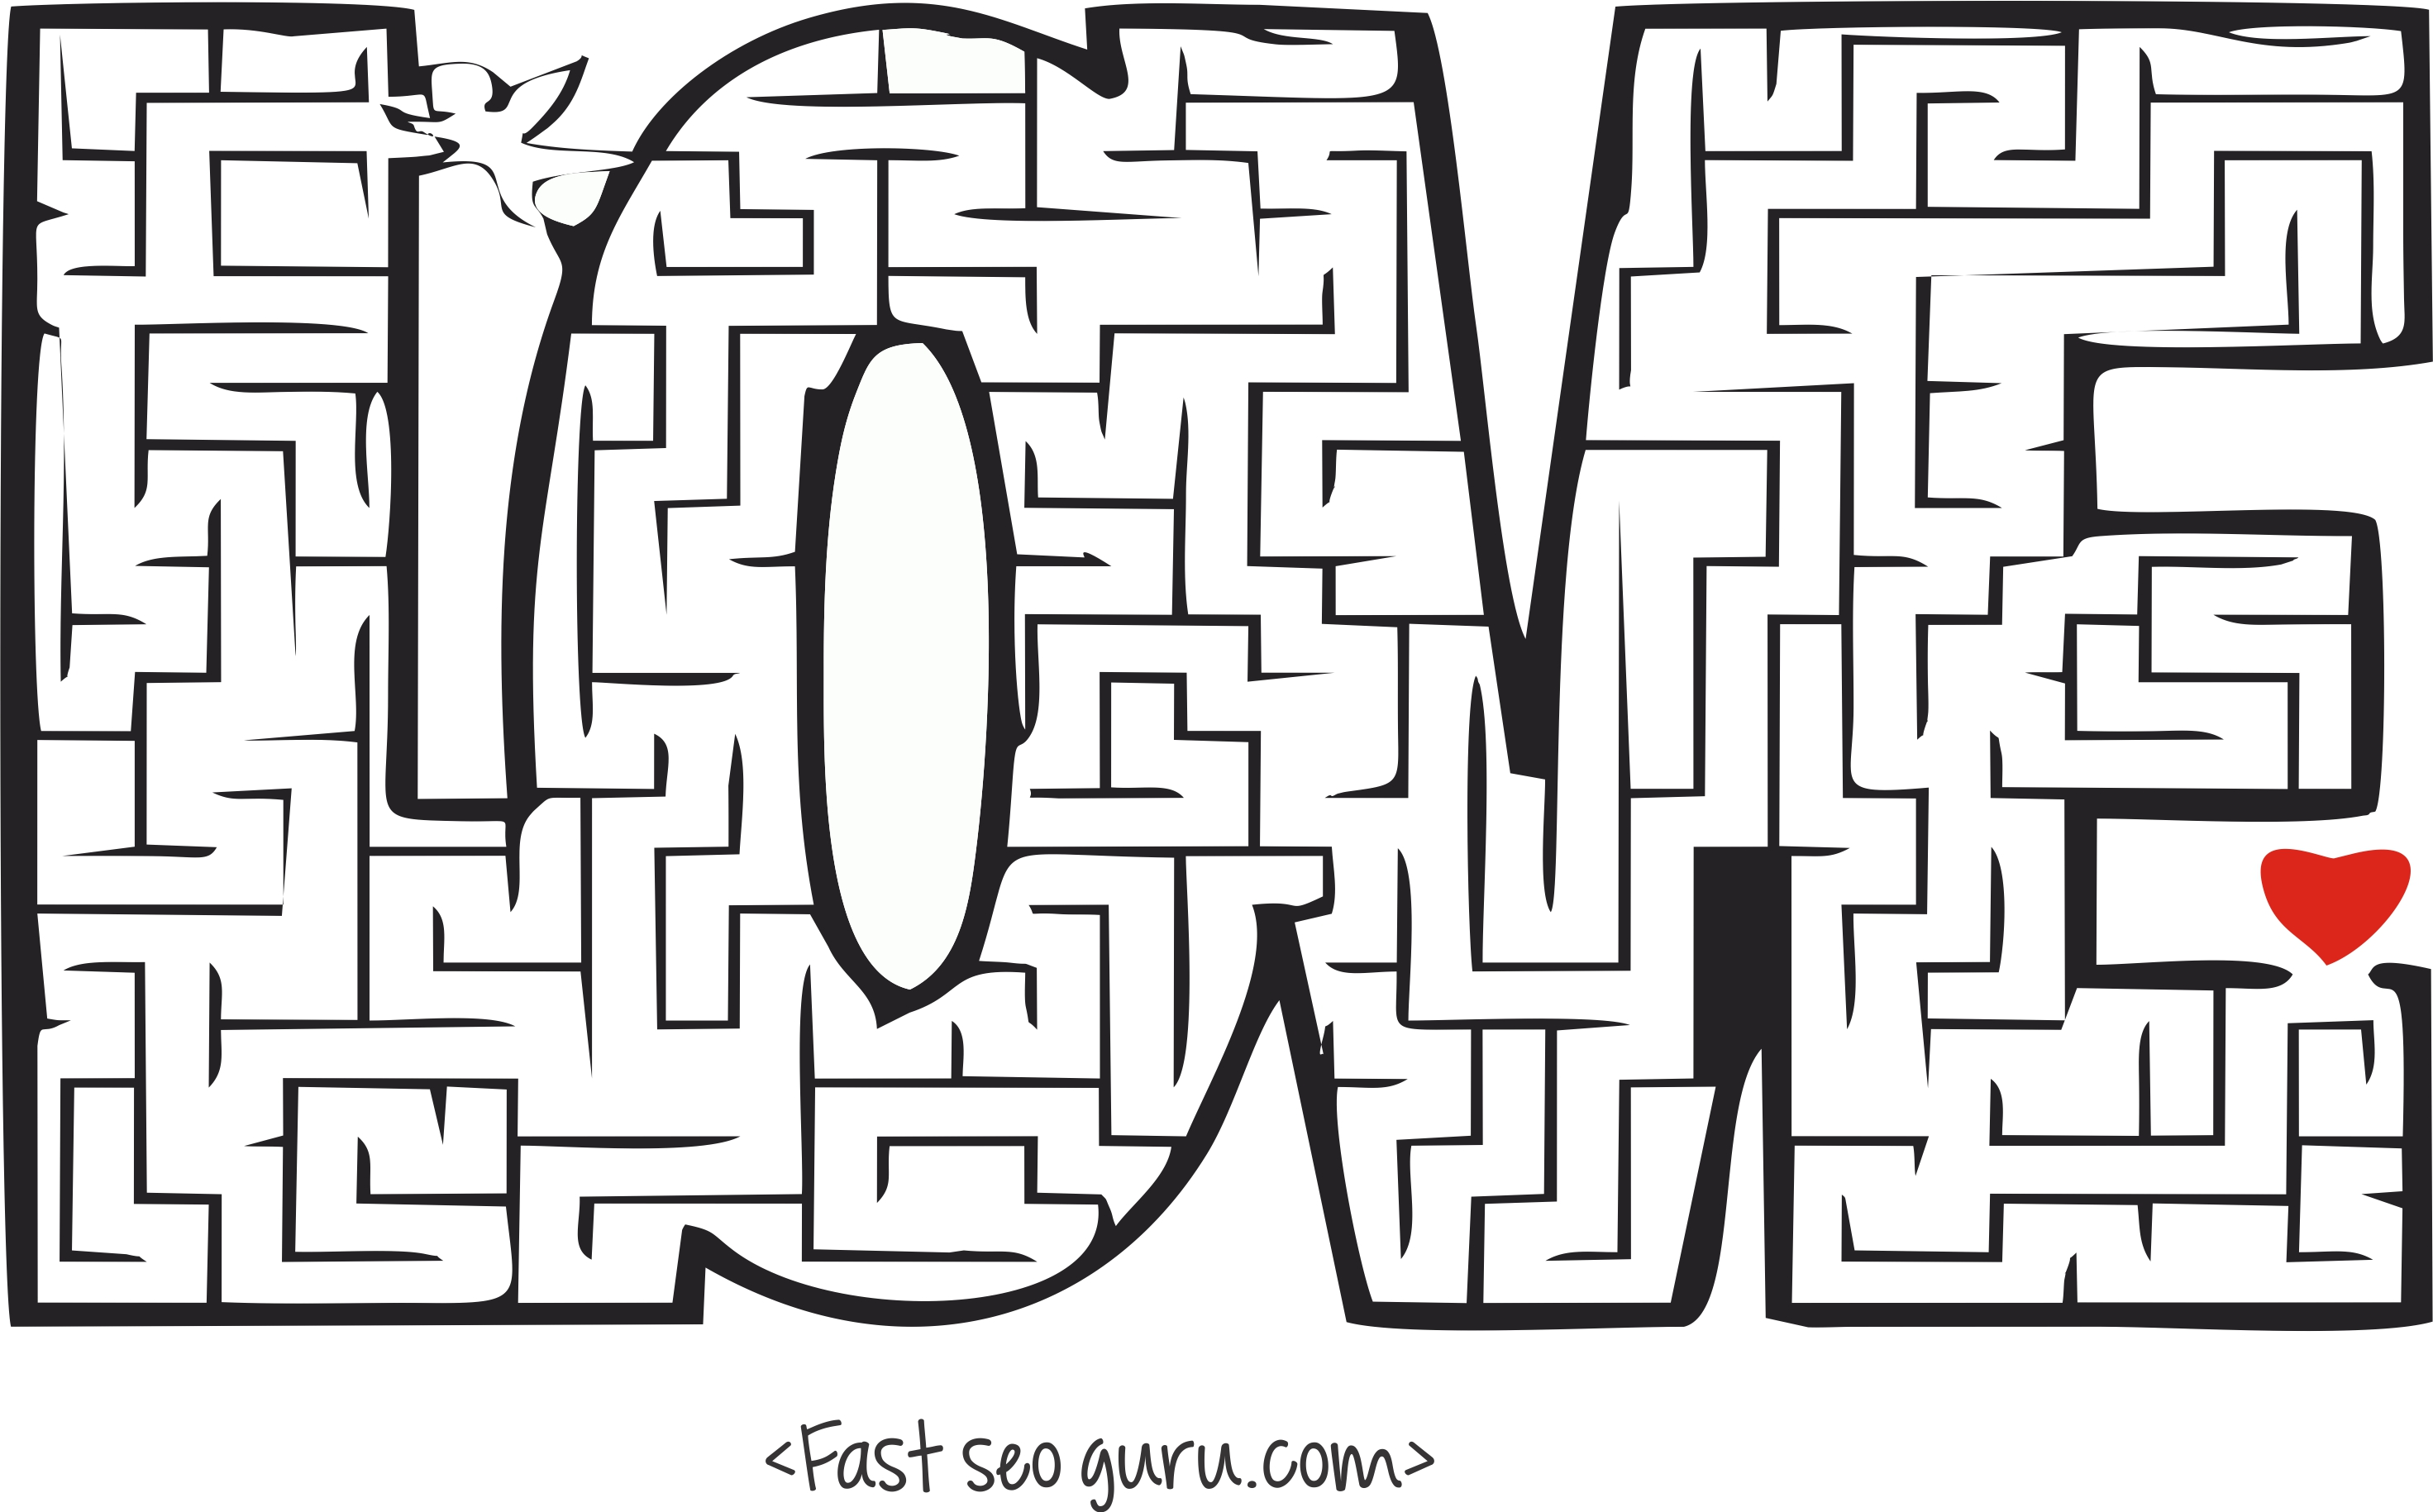 Veterans Day Maze Worksheet